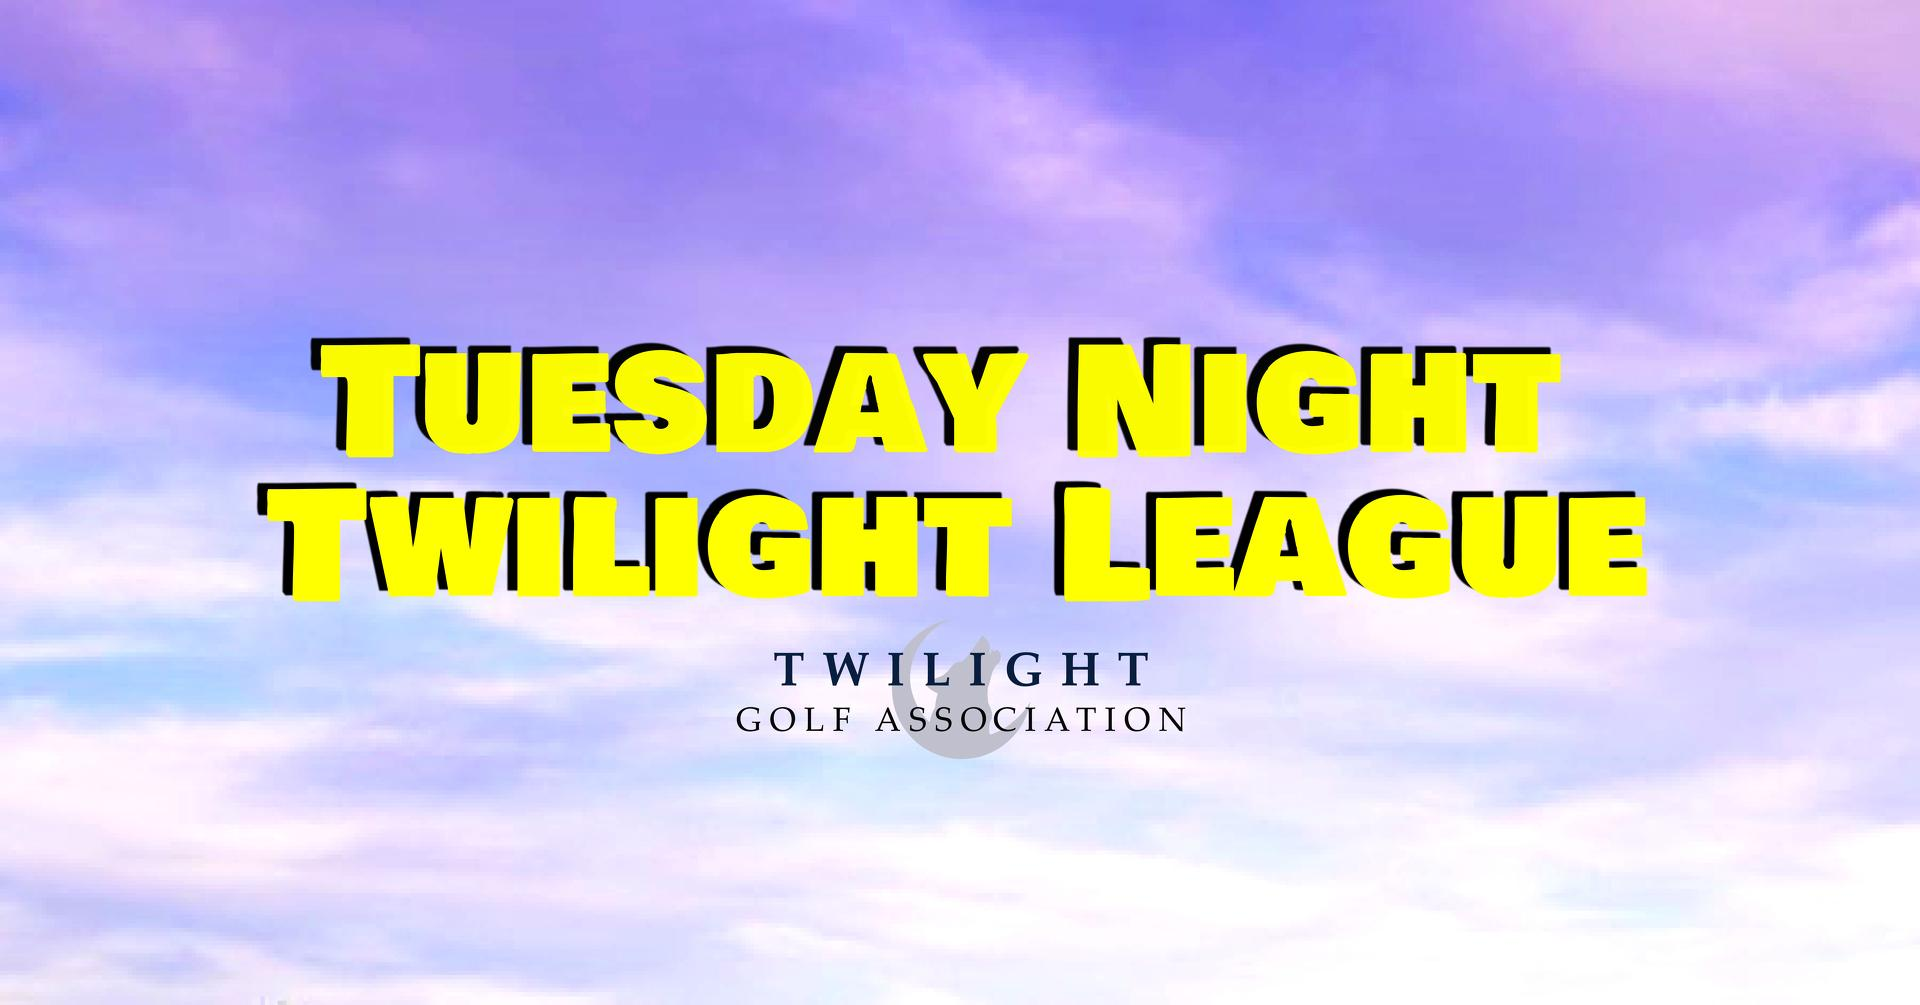 Tuesday Twilight League at Hickory Heights Golf Club